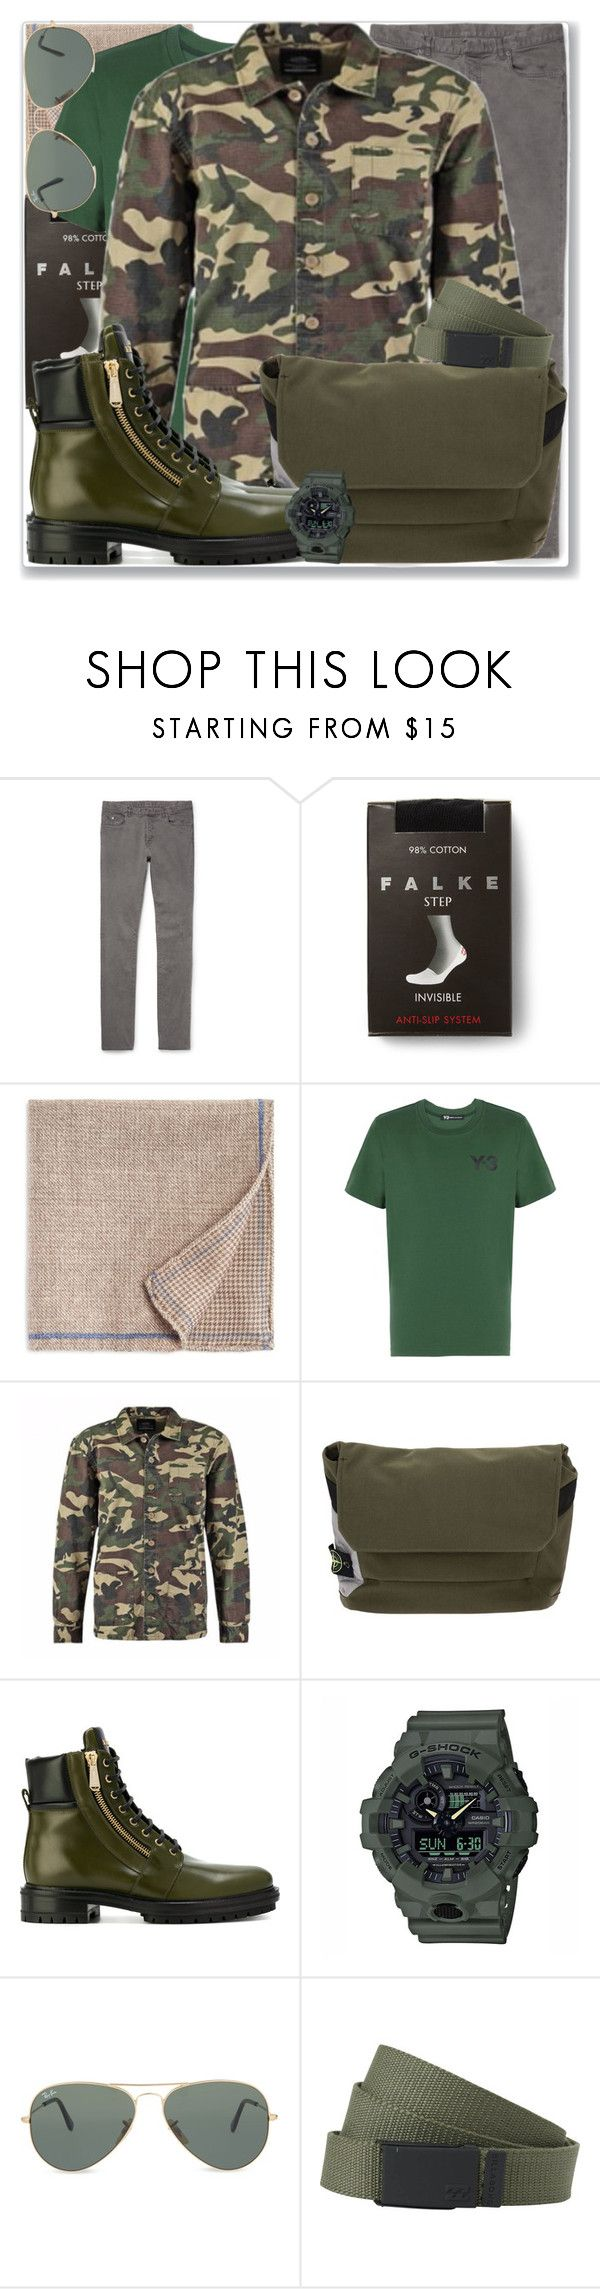 """""""Military Men 11.2"""" by rosalol ❤ liked on Polyvore featuring Maison Margiela, Falke, The Men's Store, Y-3, STONE ISLAND, Balmain, Casio, Ray-Ban and Billabong"""